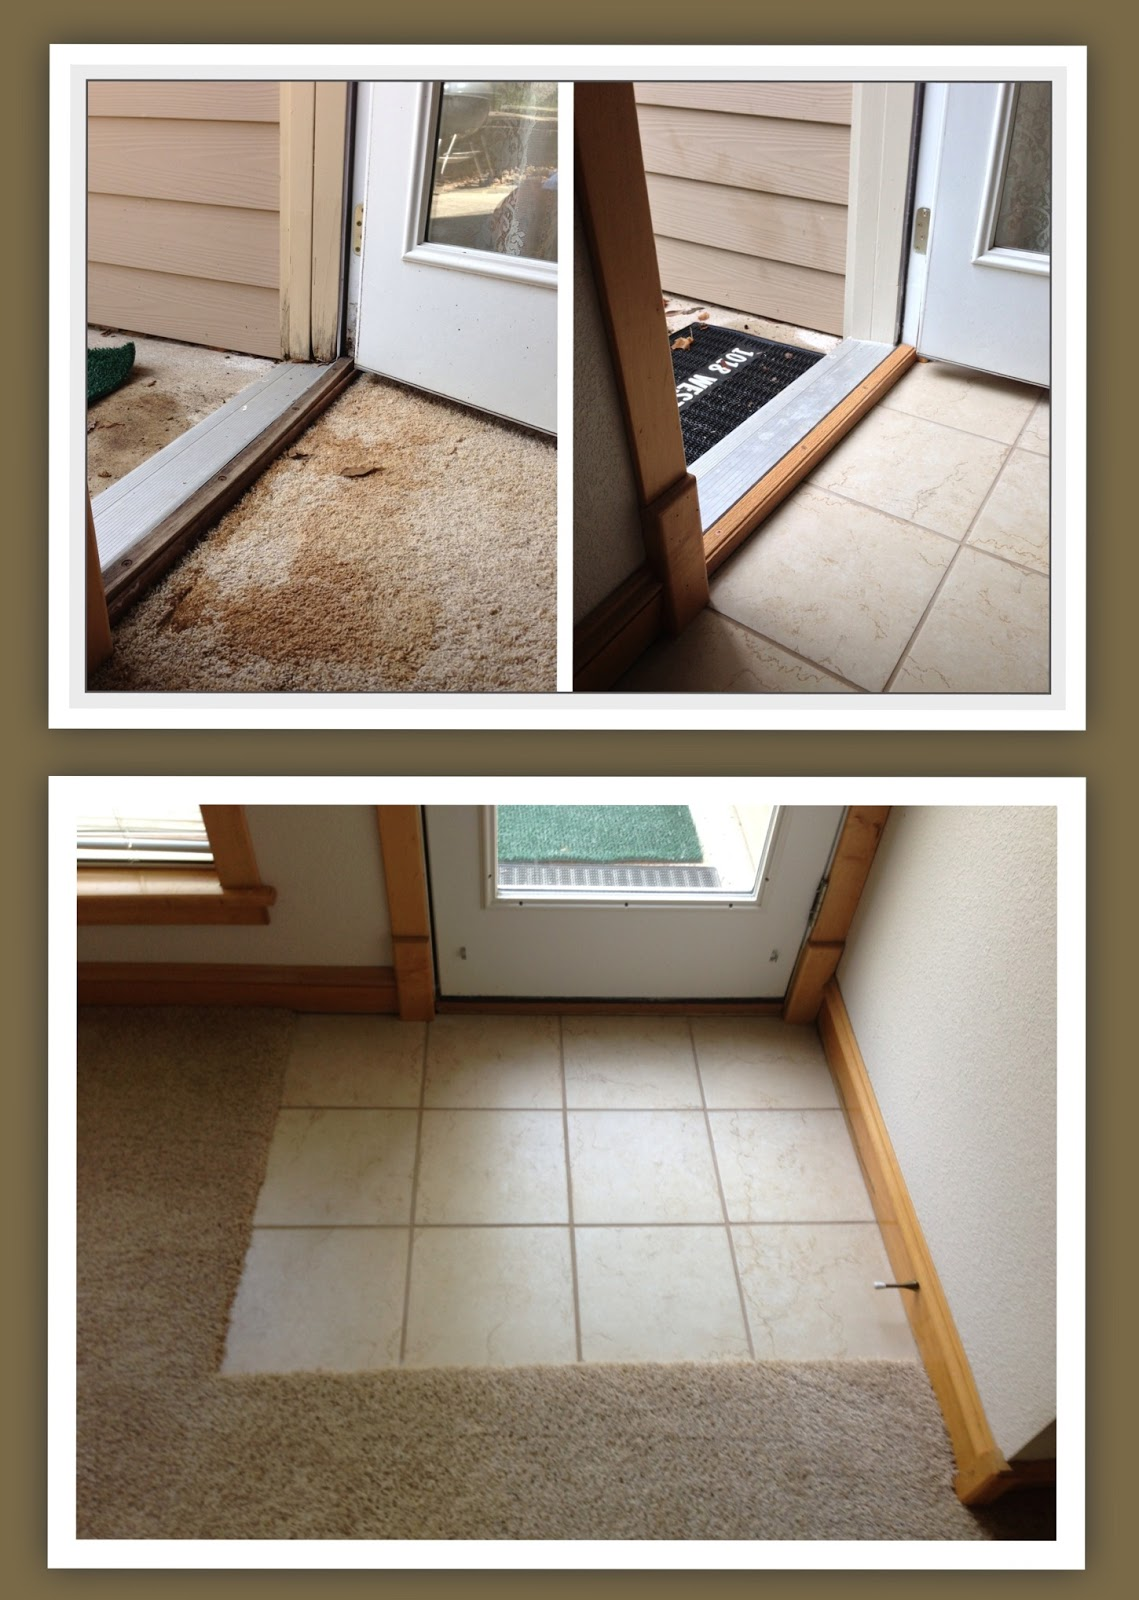 carpet with a tile entry and repair door threshold casing and trim